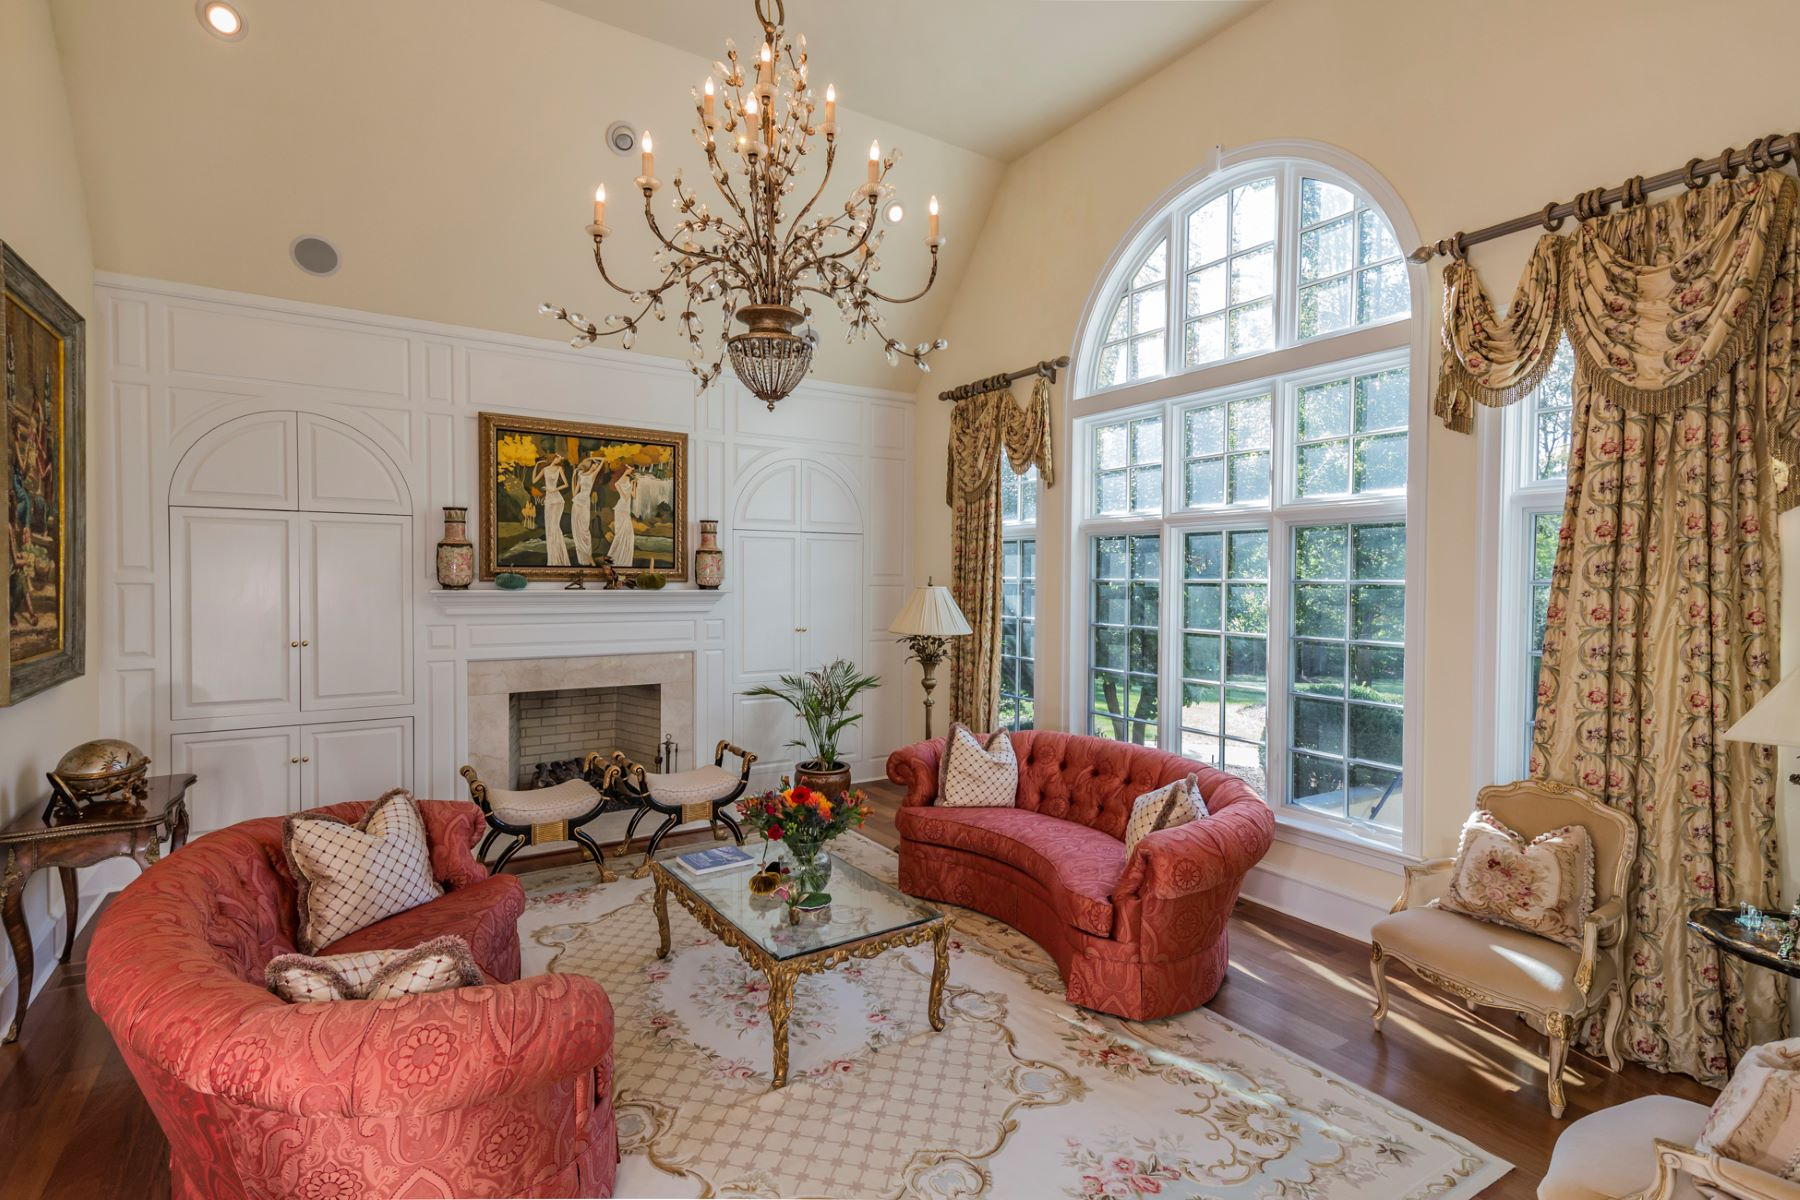 Additional photo for property listing at The Pride of Princeton's Rushbrook Enclave 18 Katies Pond Road, Princeton, New Jersey 08540 United States